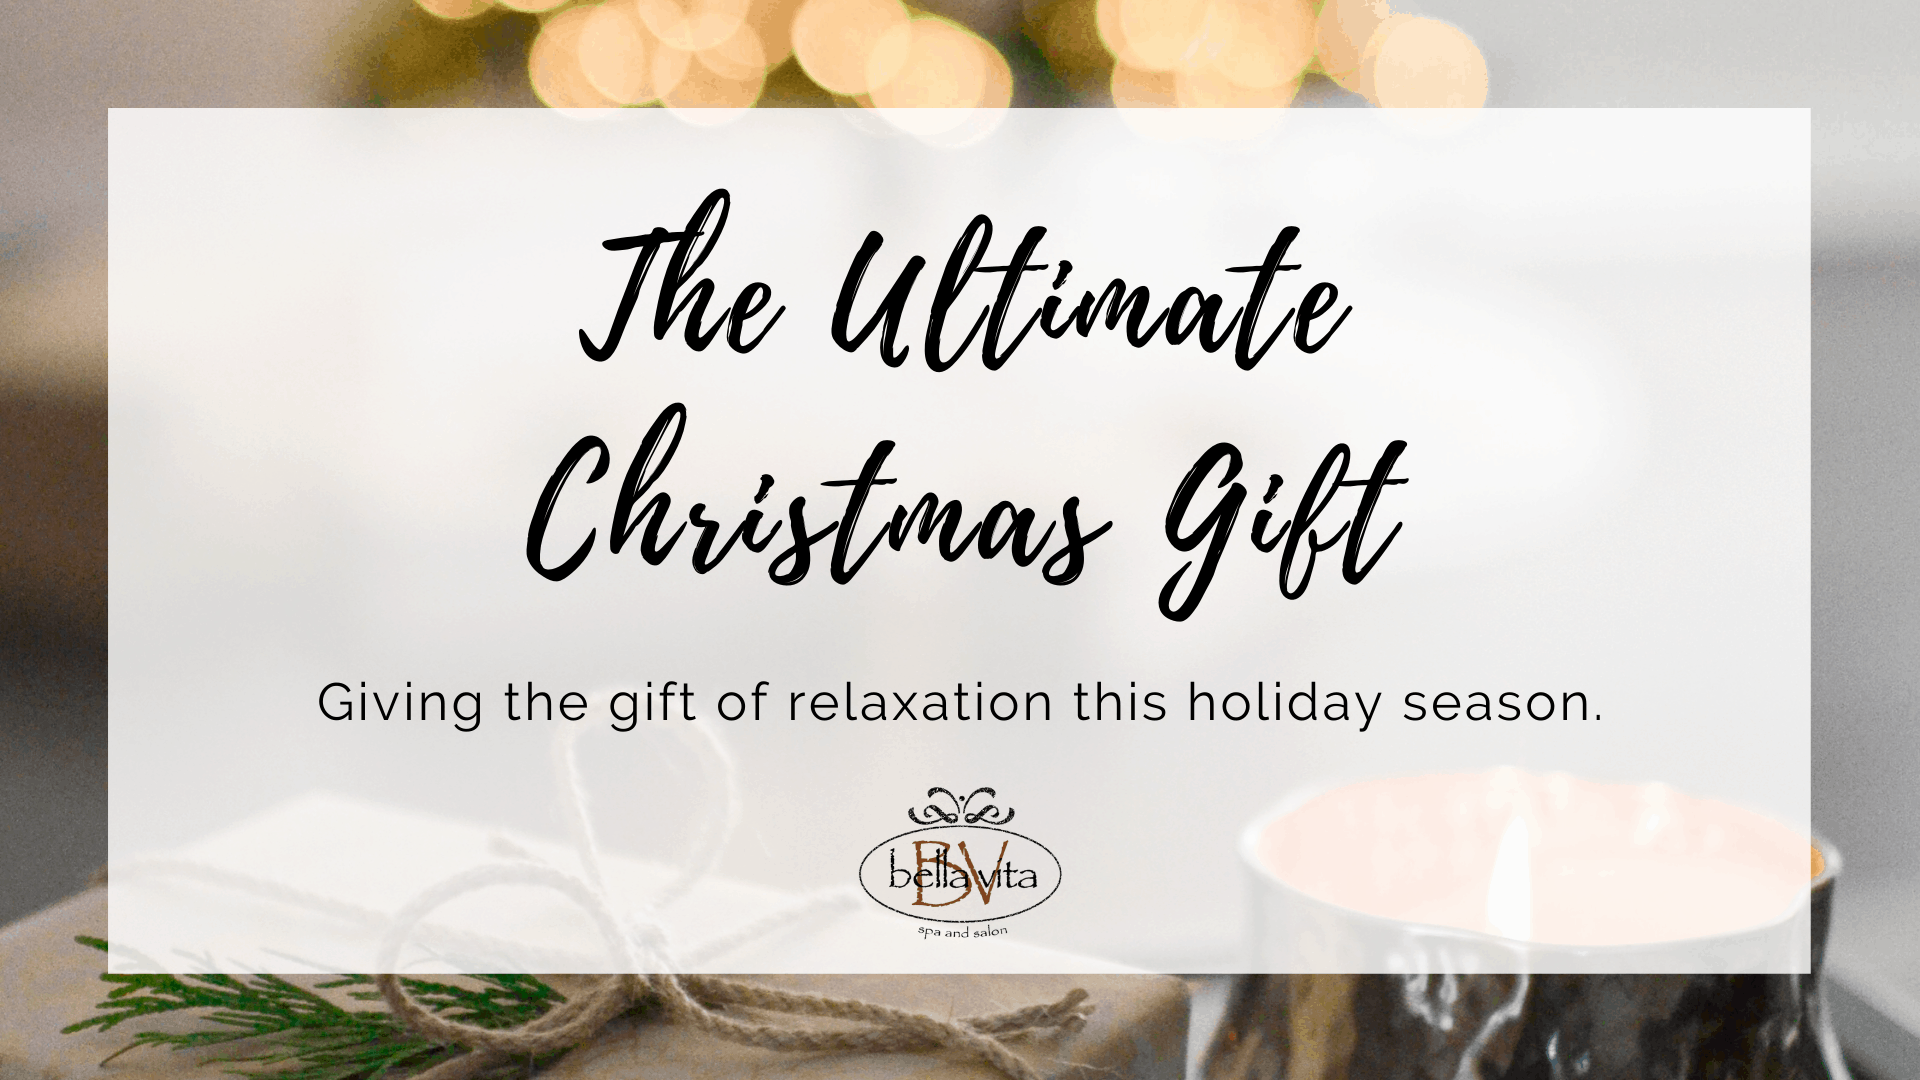 Giving Relaxation for Christmas Gift